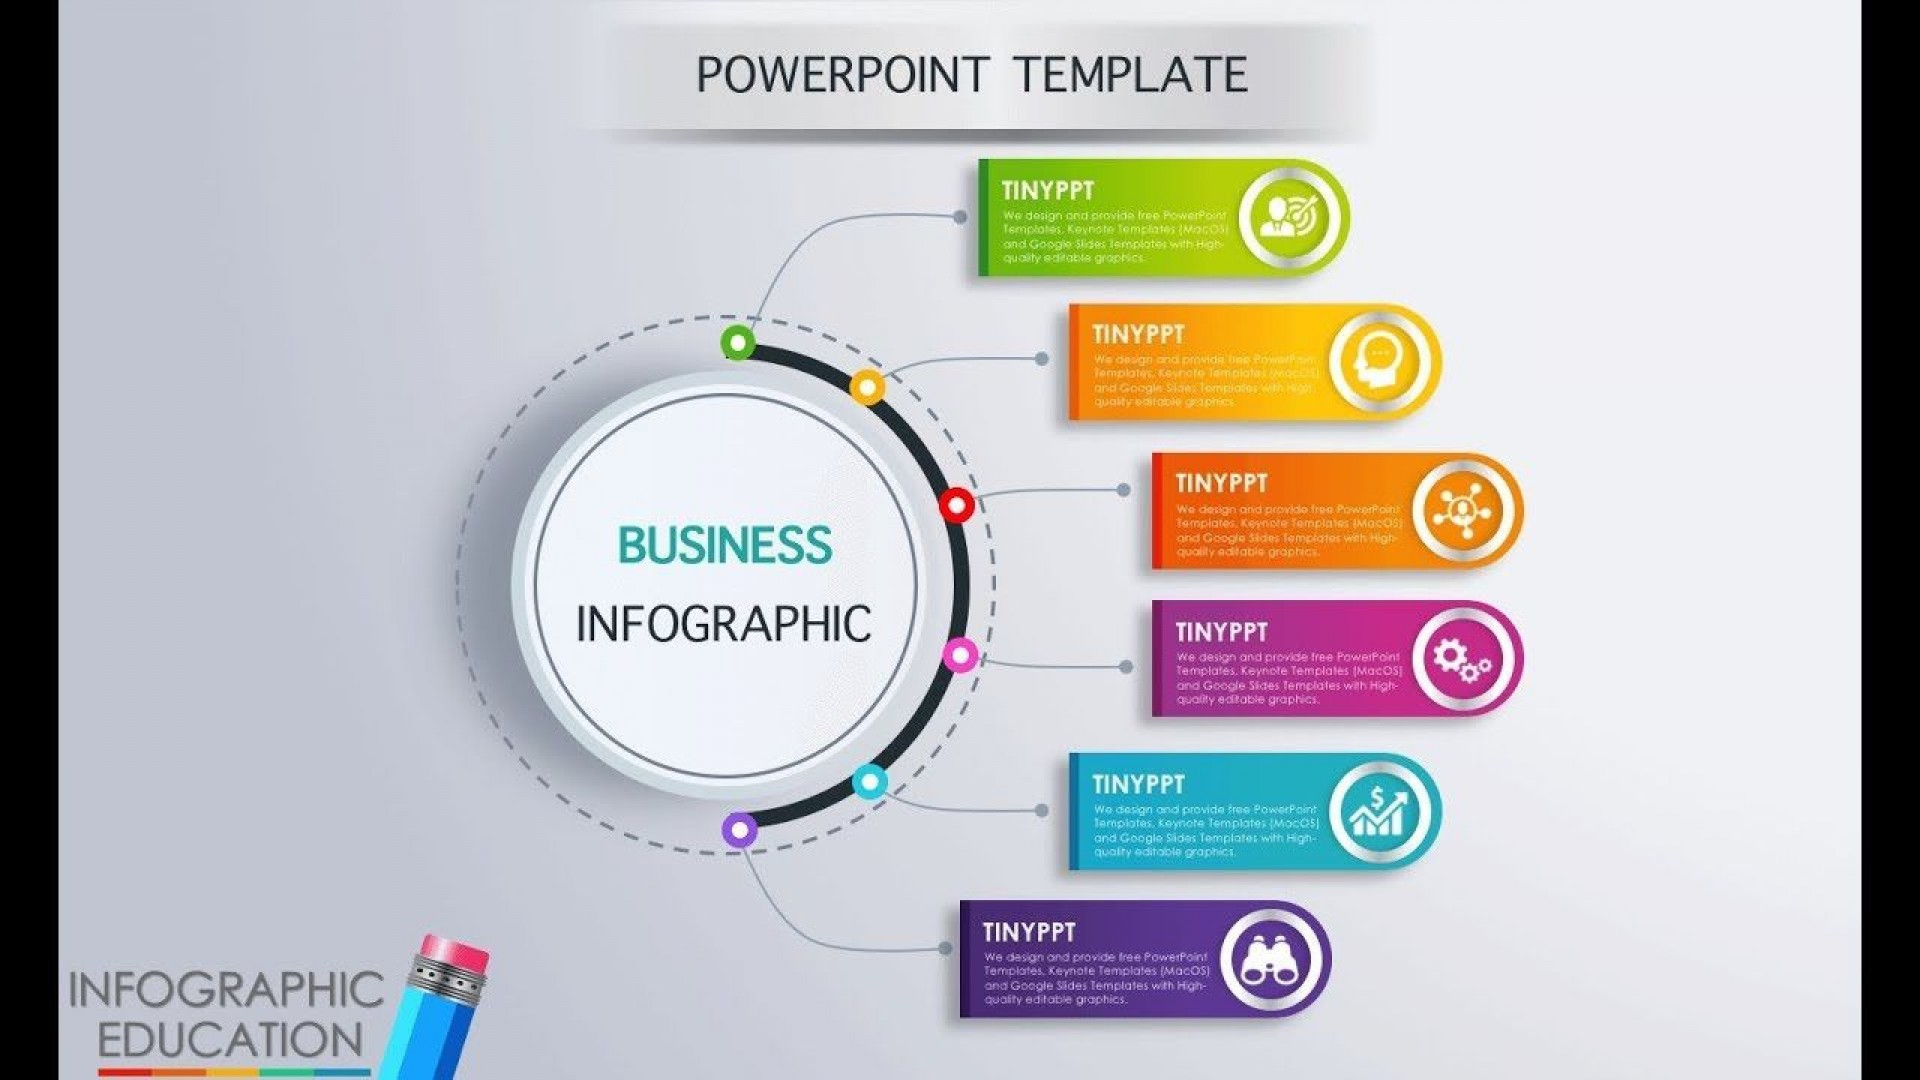 009 Magnificent Animated Powerpoint Template Free Download Highest Clarity  2019 3d 2016 Education1920